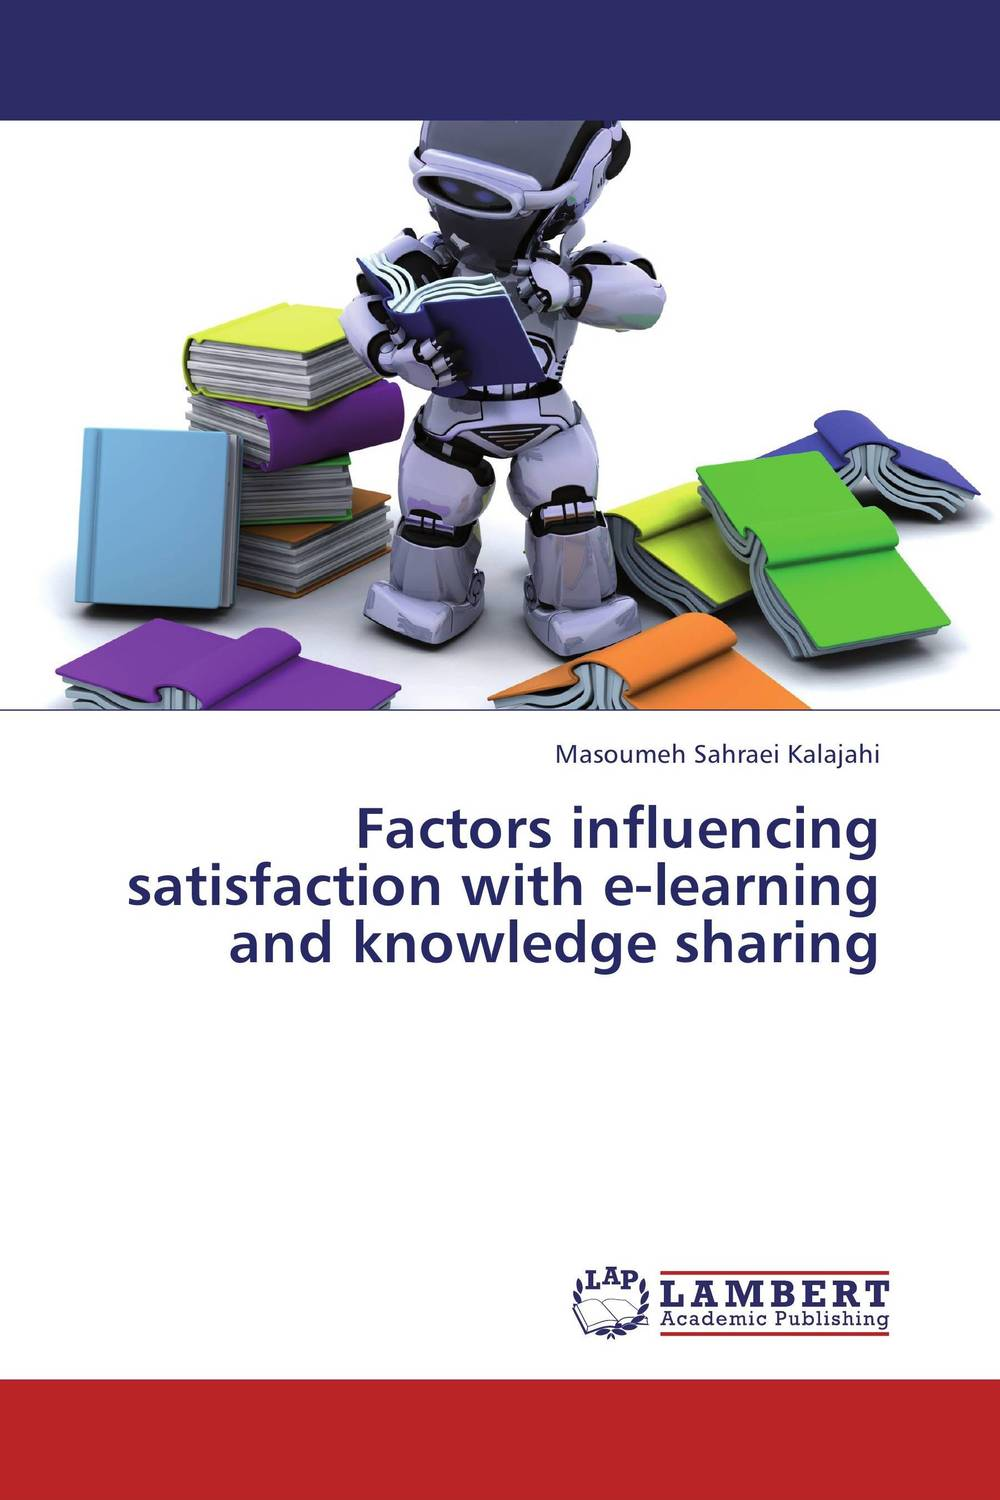 Factors influencing satisfaction with e-learning and knowledge sharing